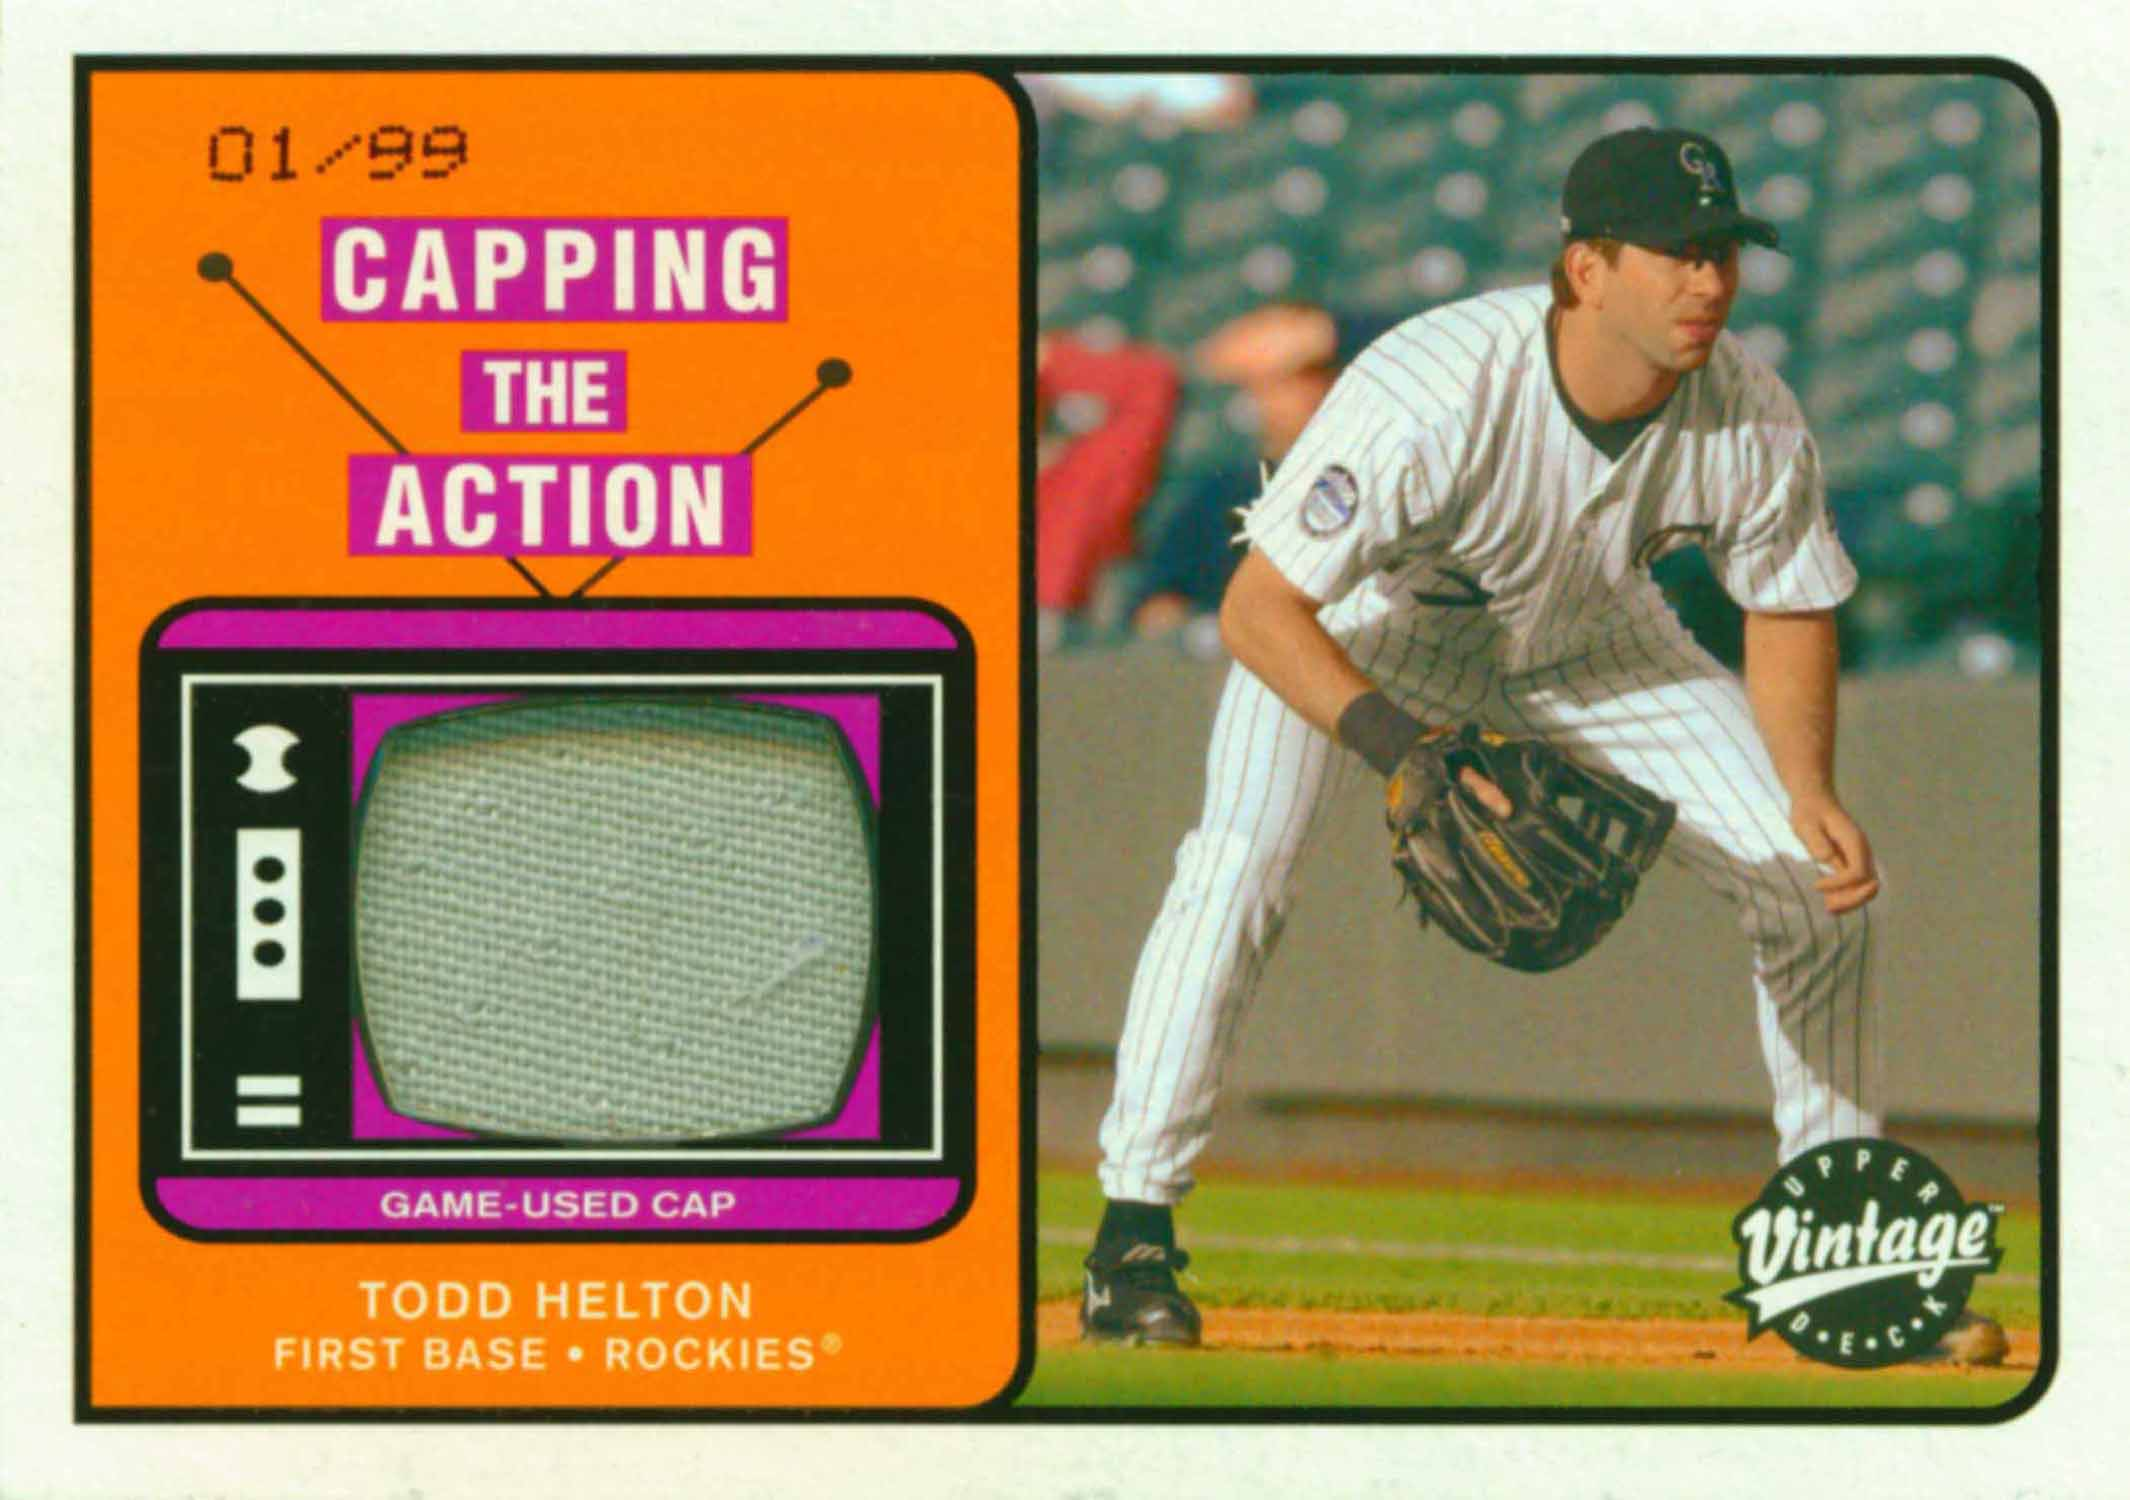 2003 Upper Deck Vintage Capping the Action